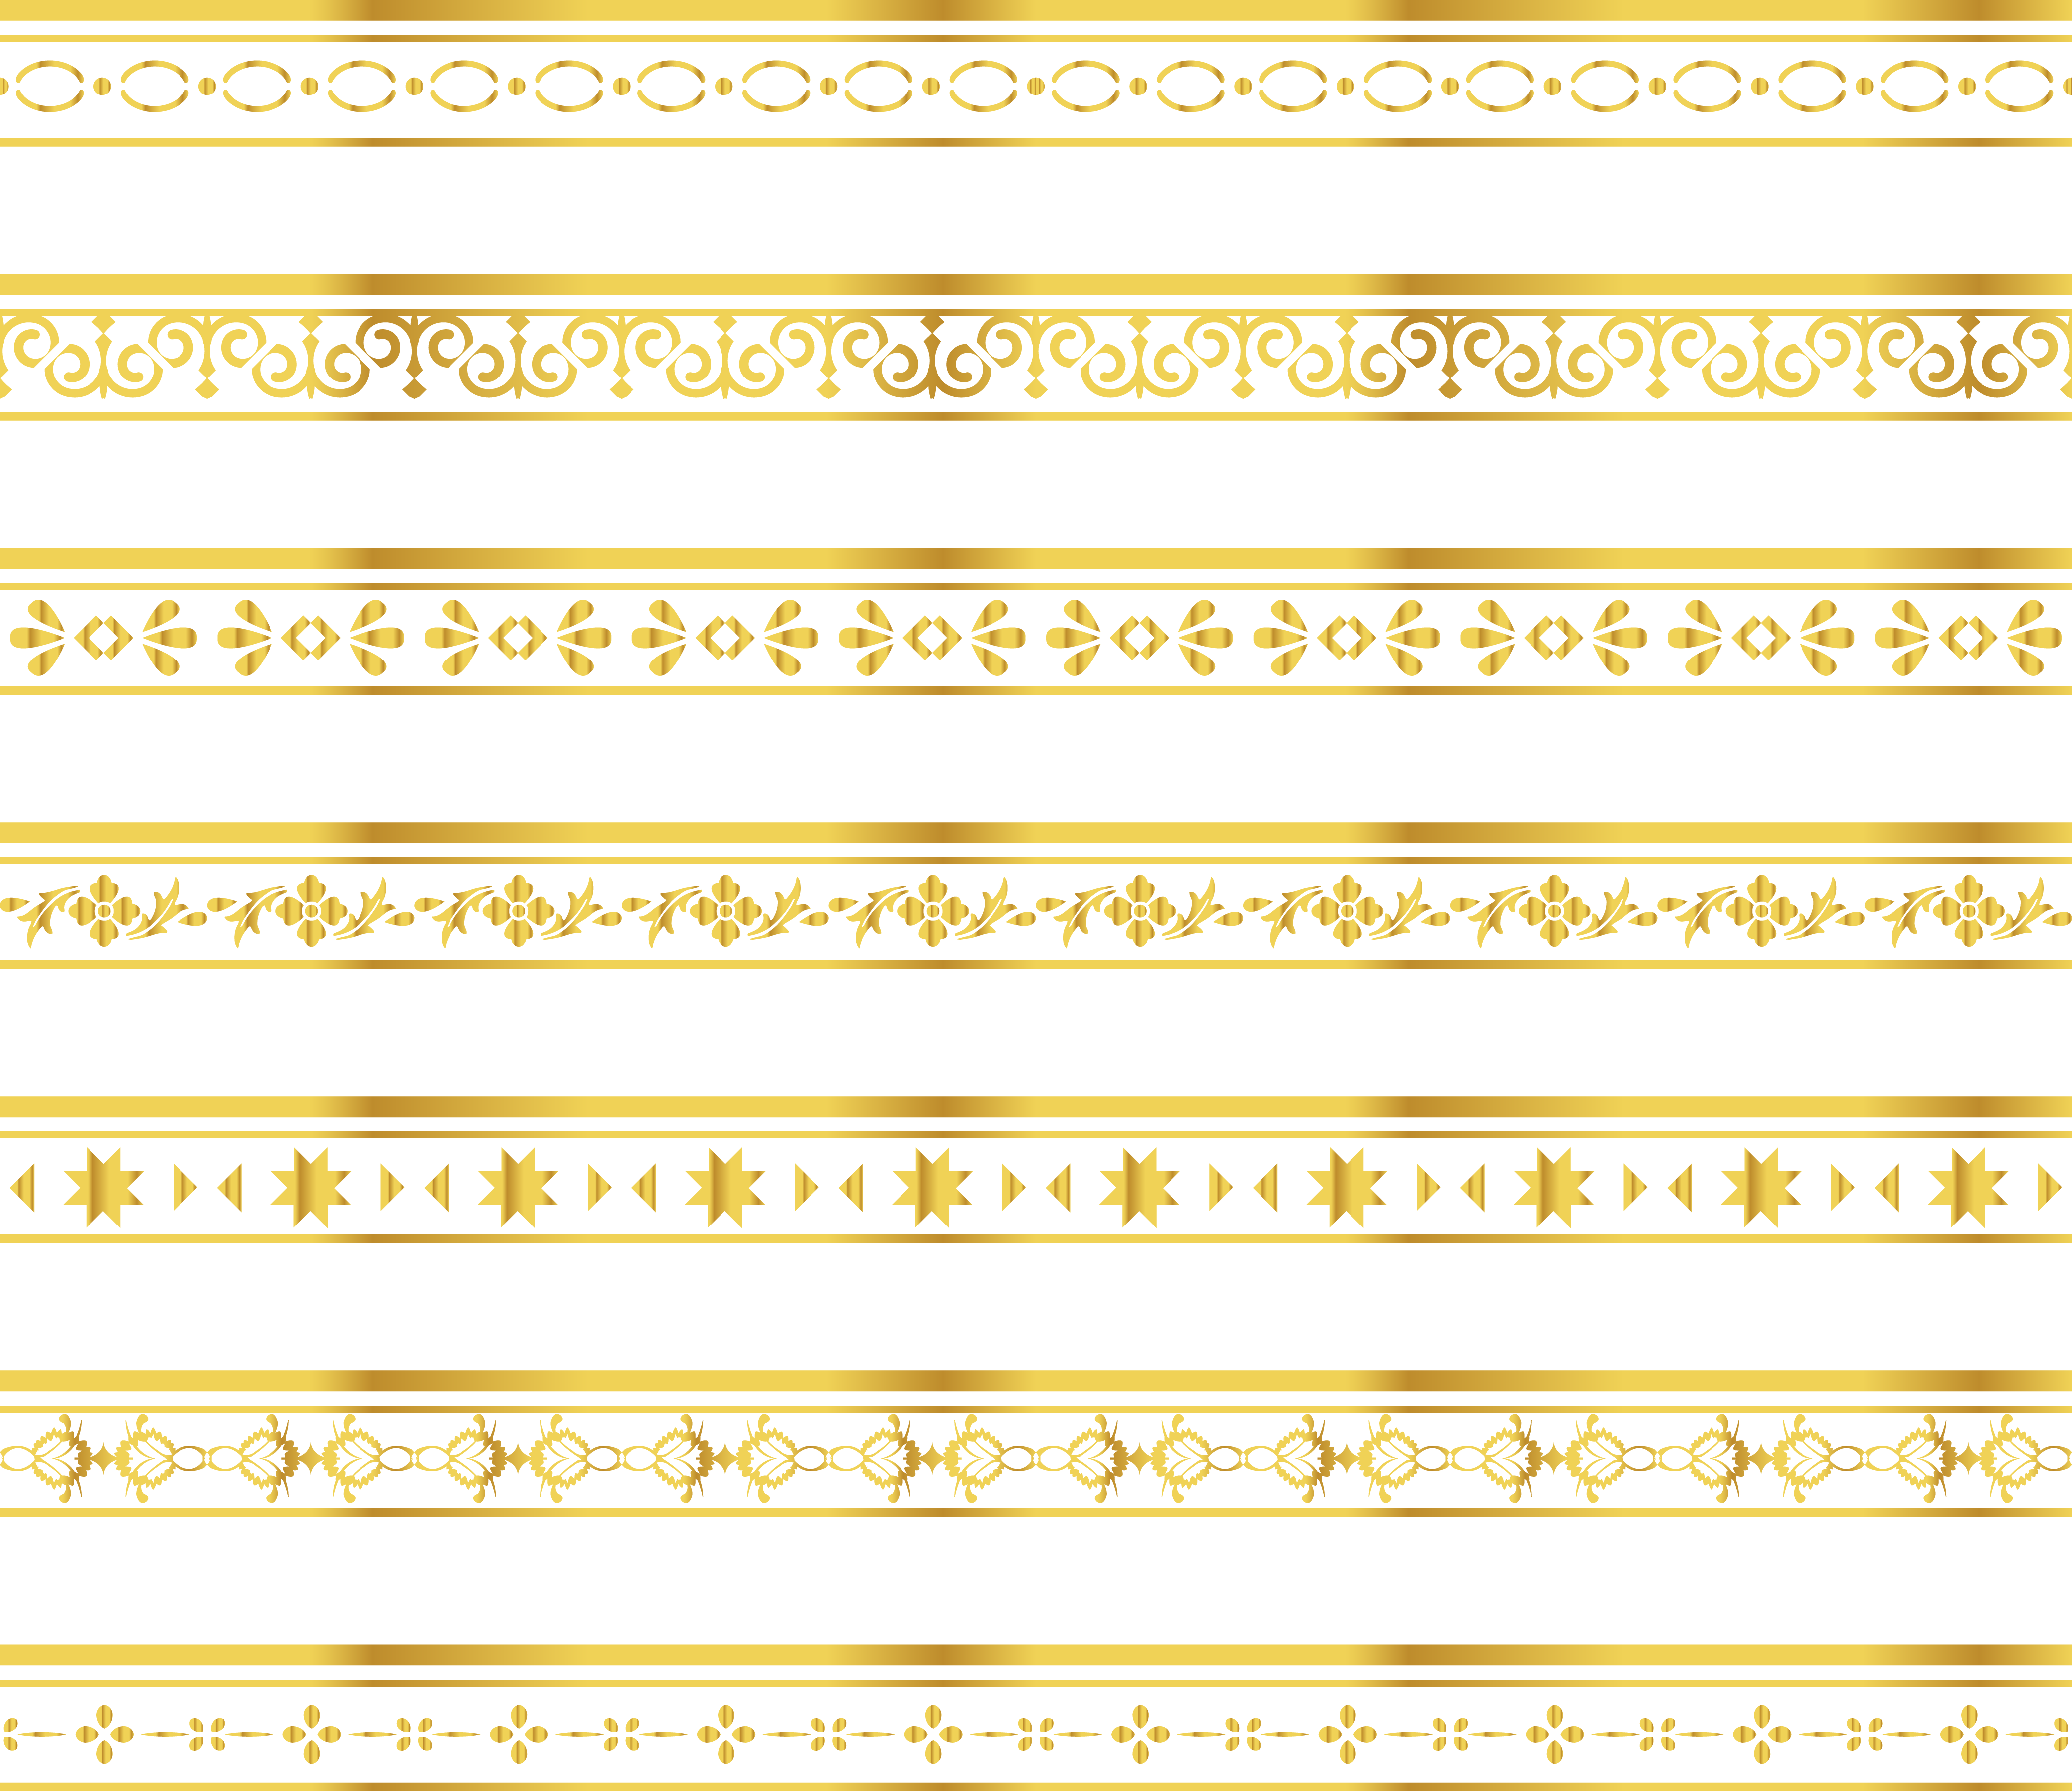 Gold lace border png. Material yellow pattern delicate